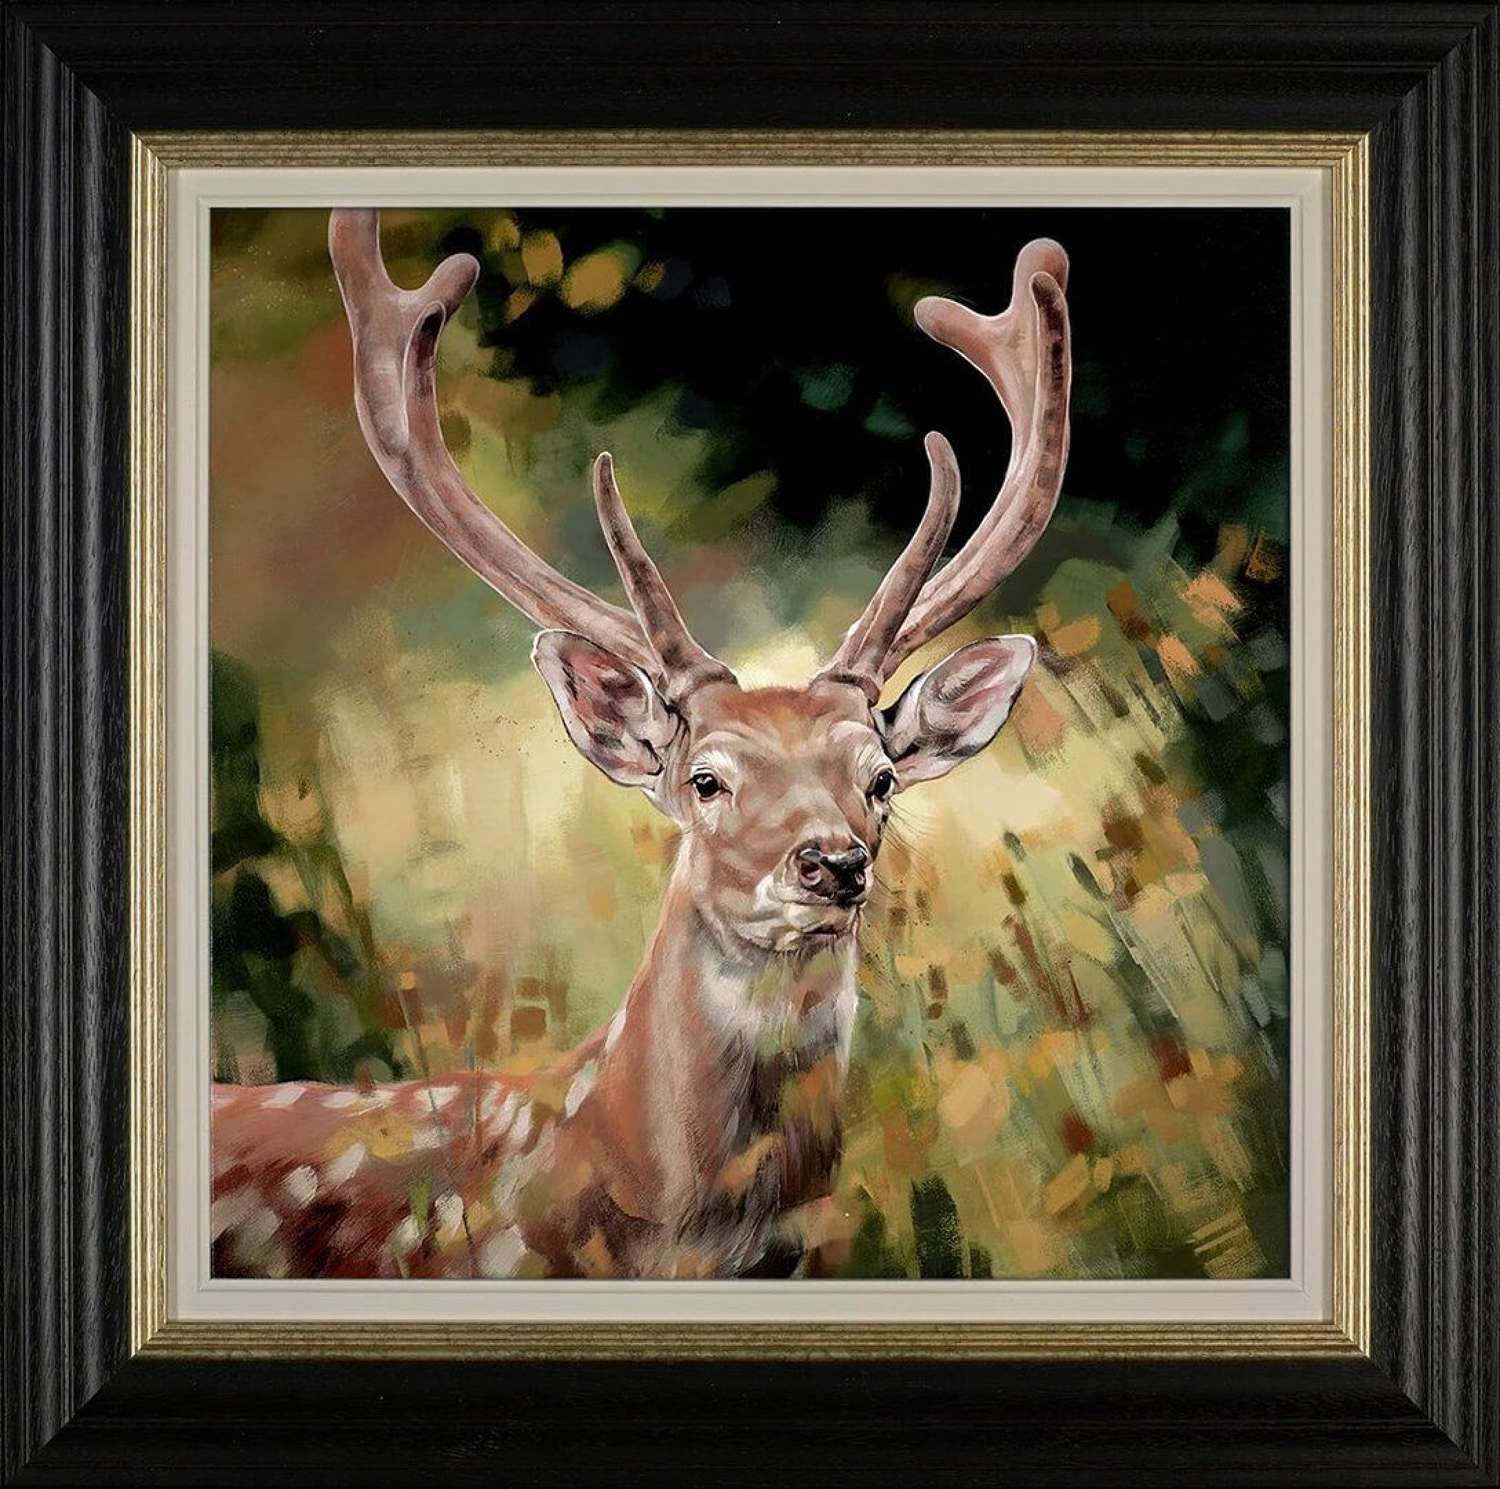 Contemplating - Framed Art Print by Debbie Boon